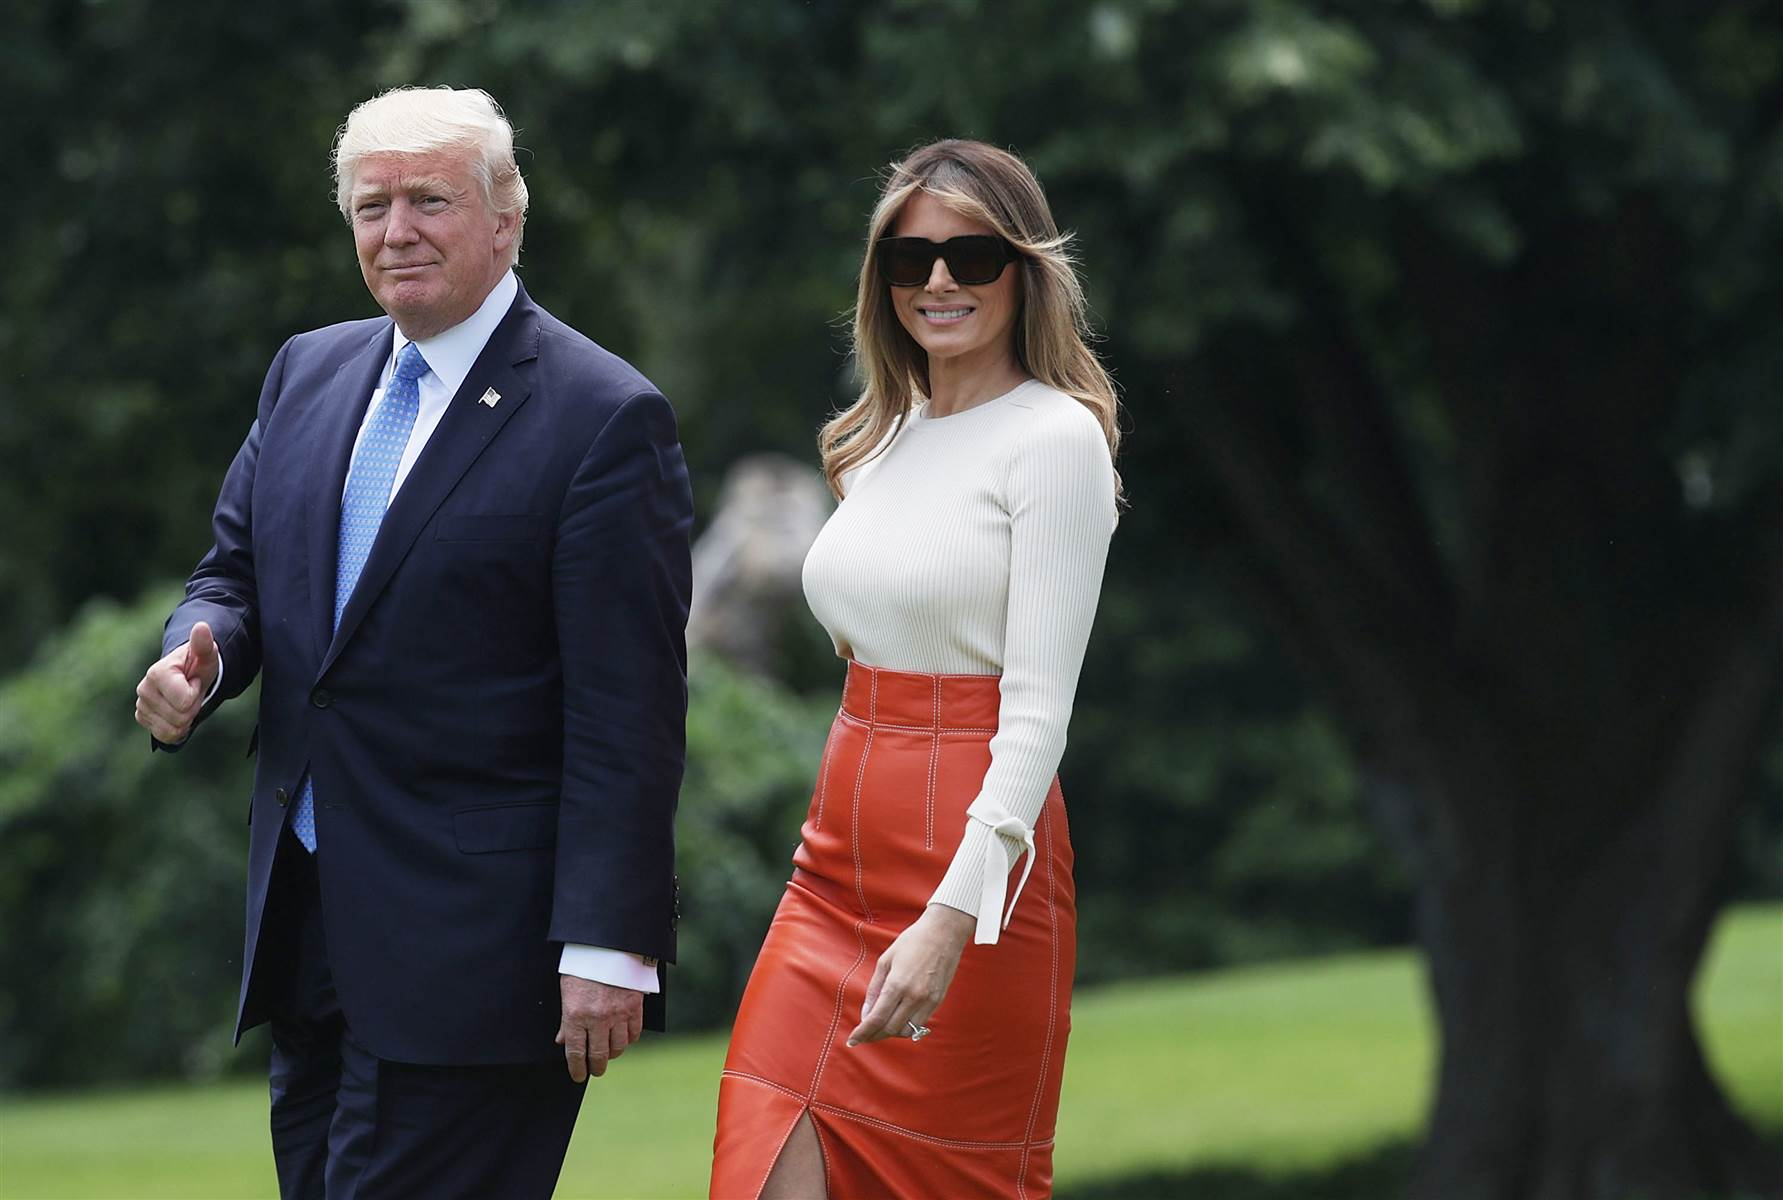 President elect Mr Donald Trump and First Lady Mrs Trump